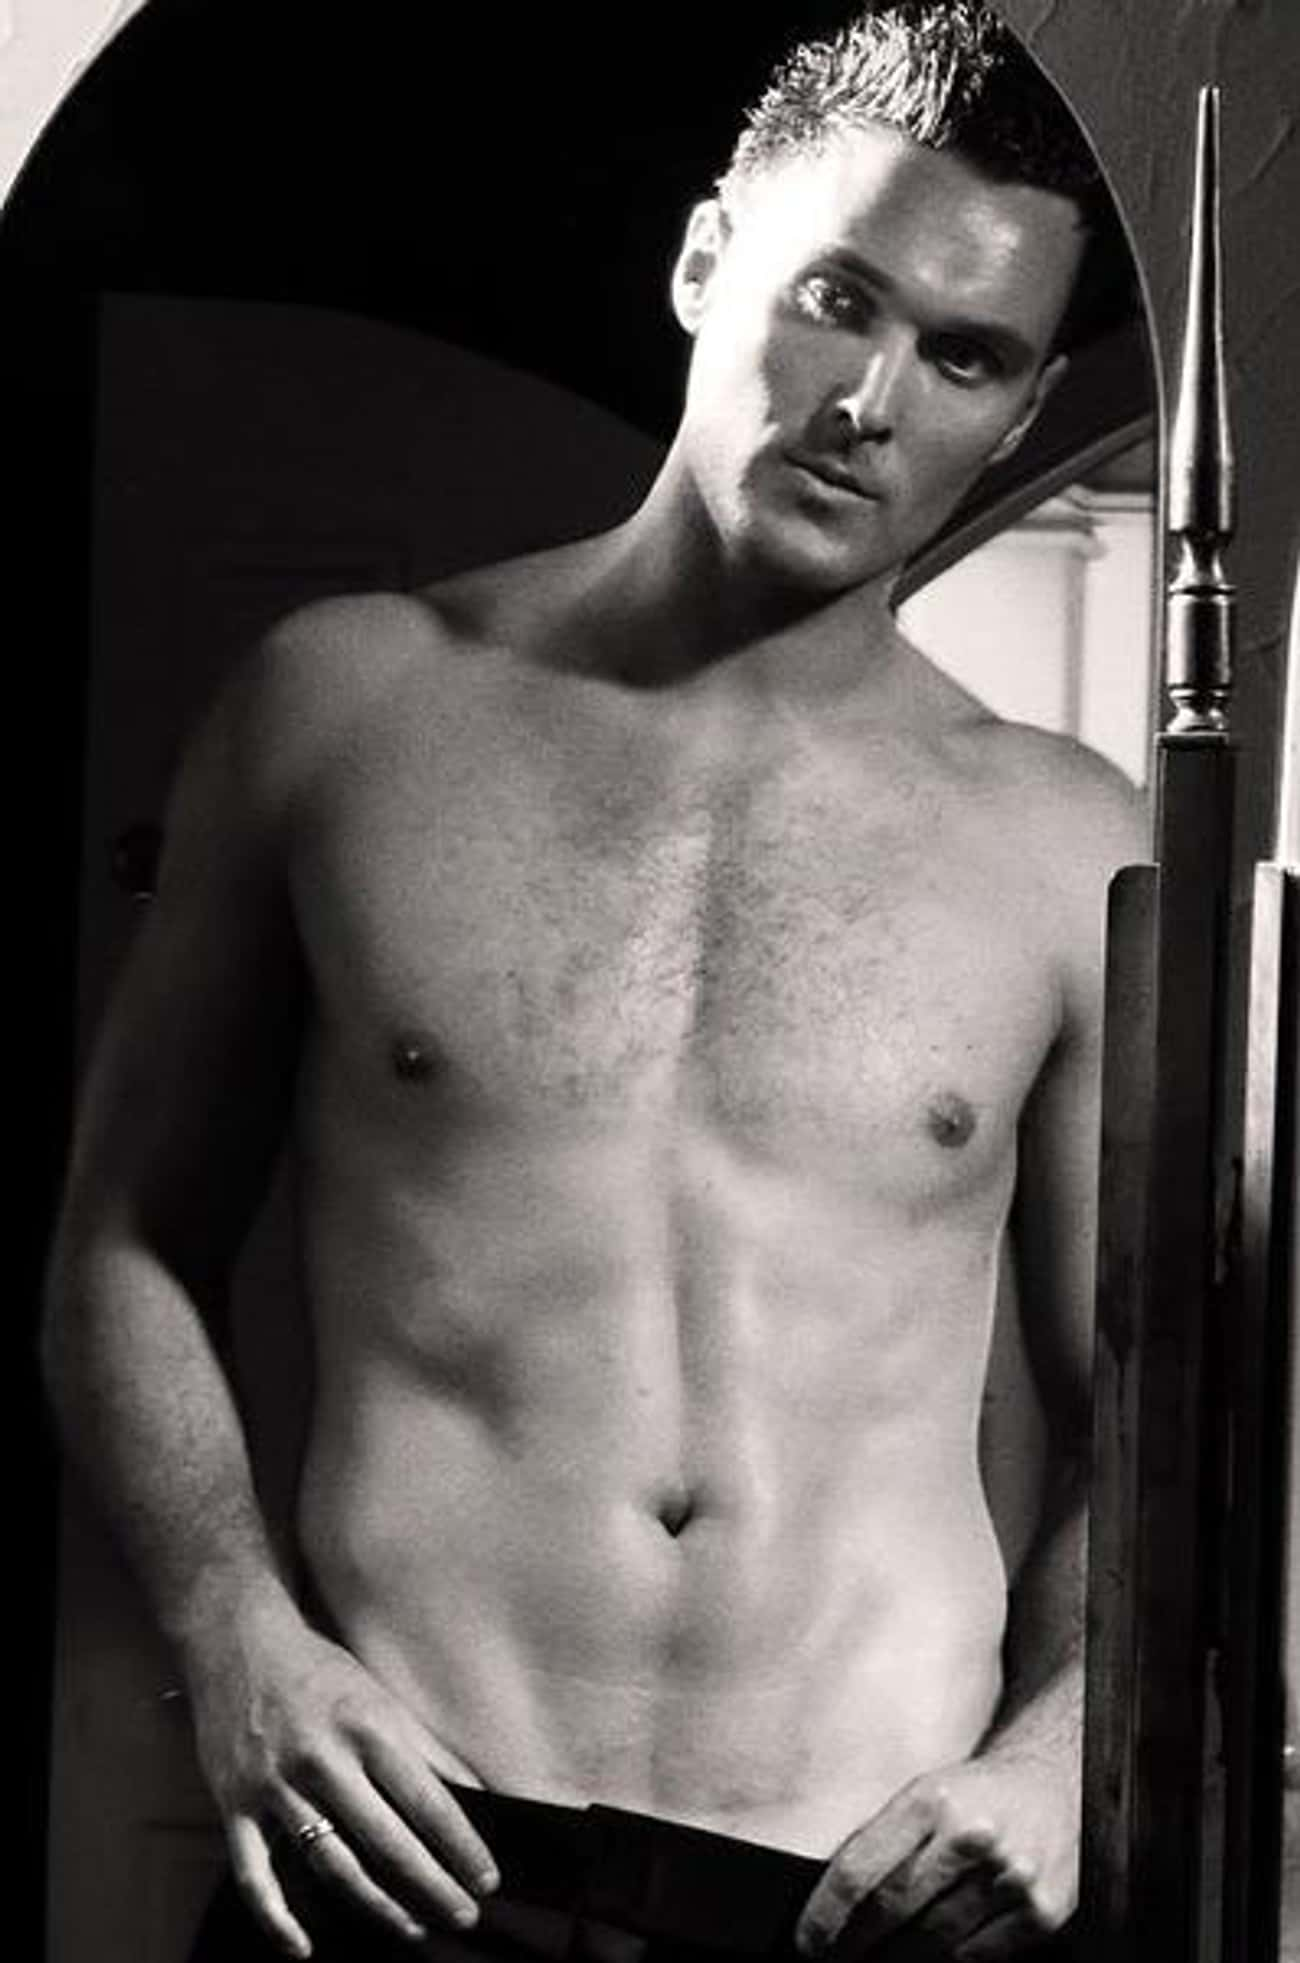 Owain Yeoman in Shirtless Pose is listed (or ranked) 1 on the list Hot Owain Yeoman Photos